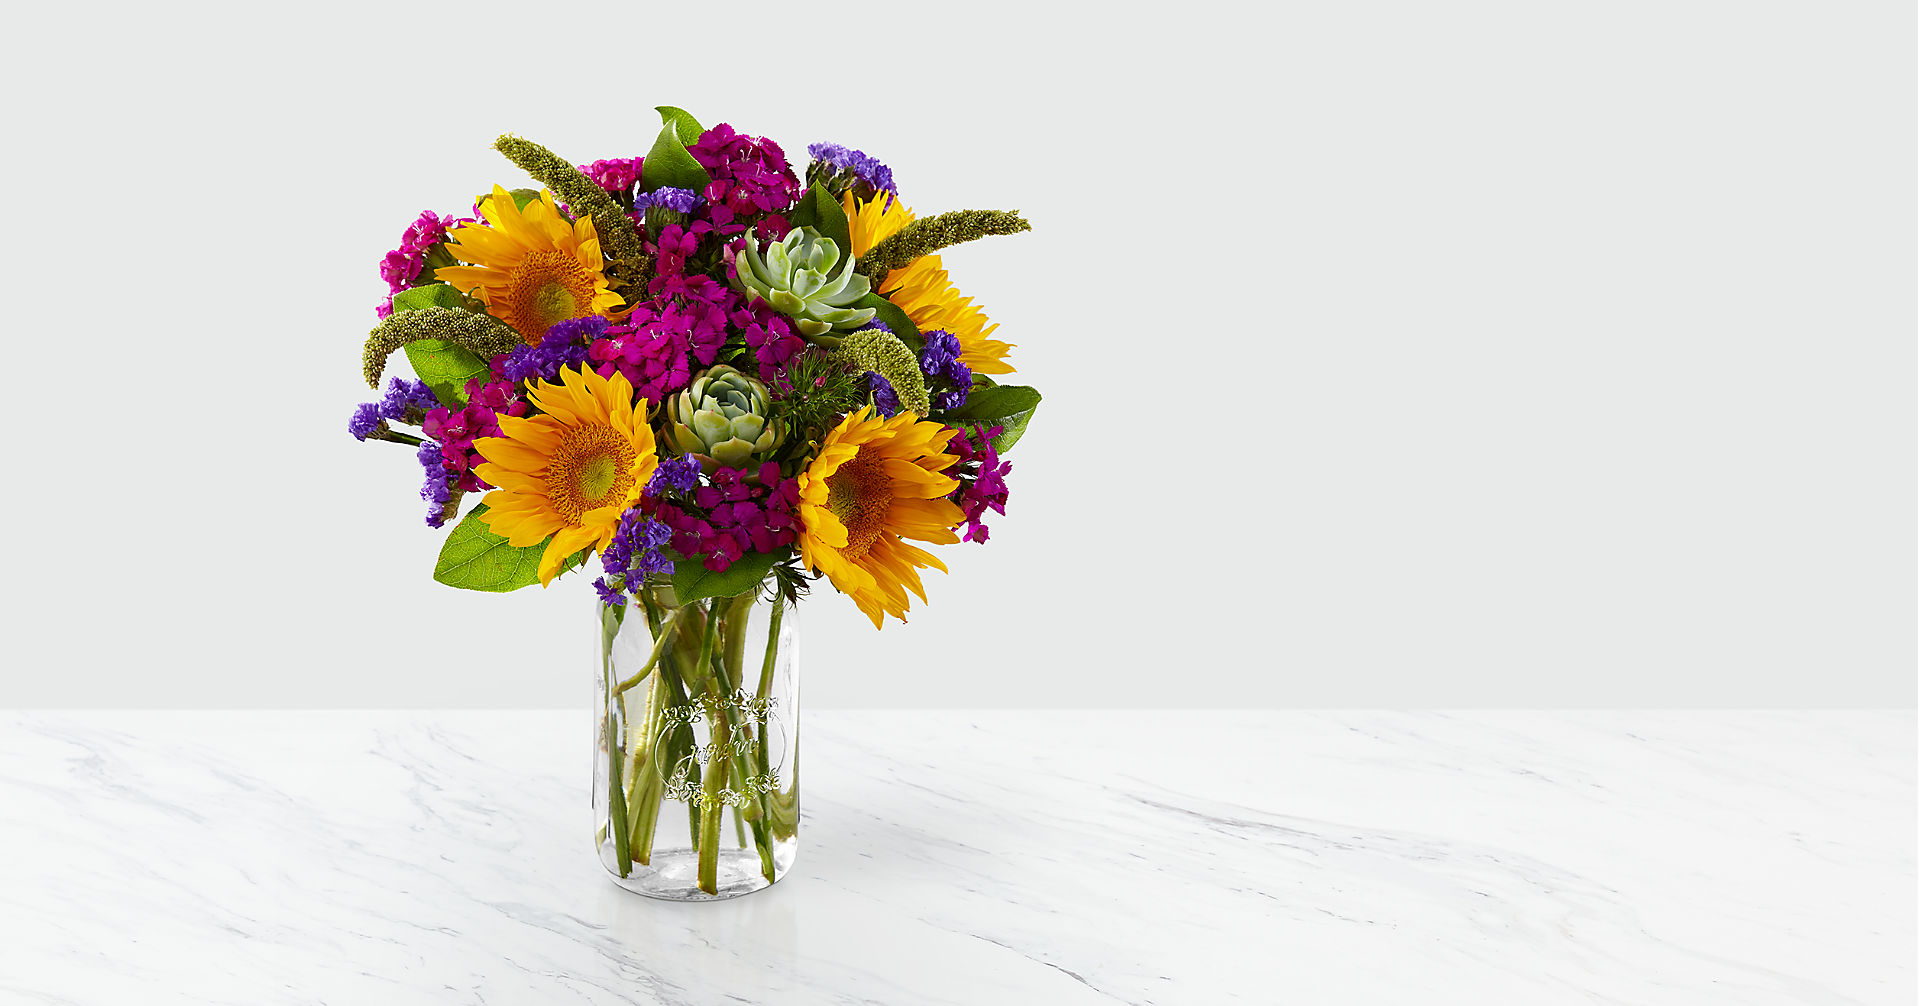 Southwest Sweetness Bouquet - Image 1 Of 6